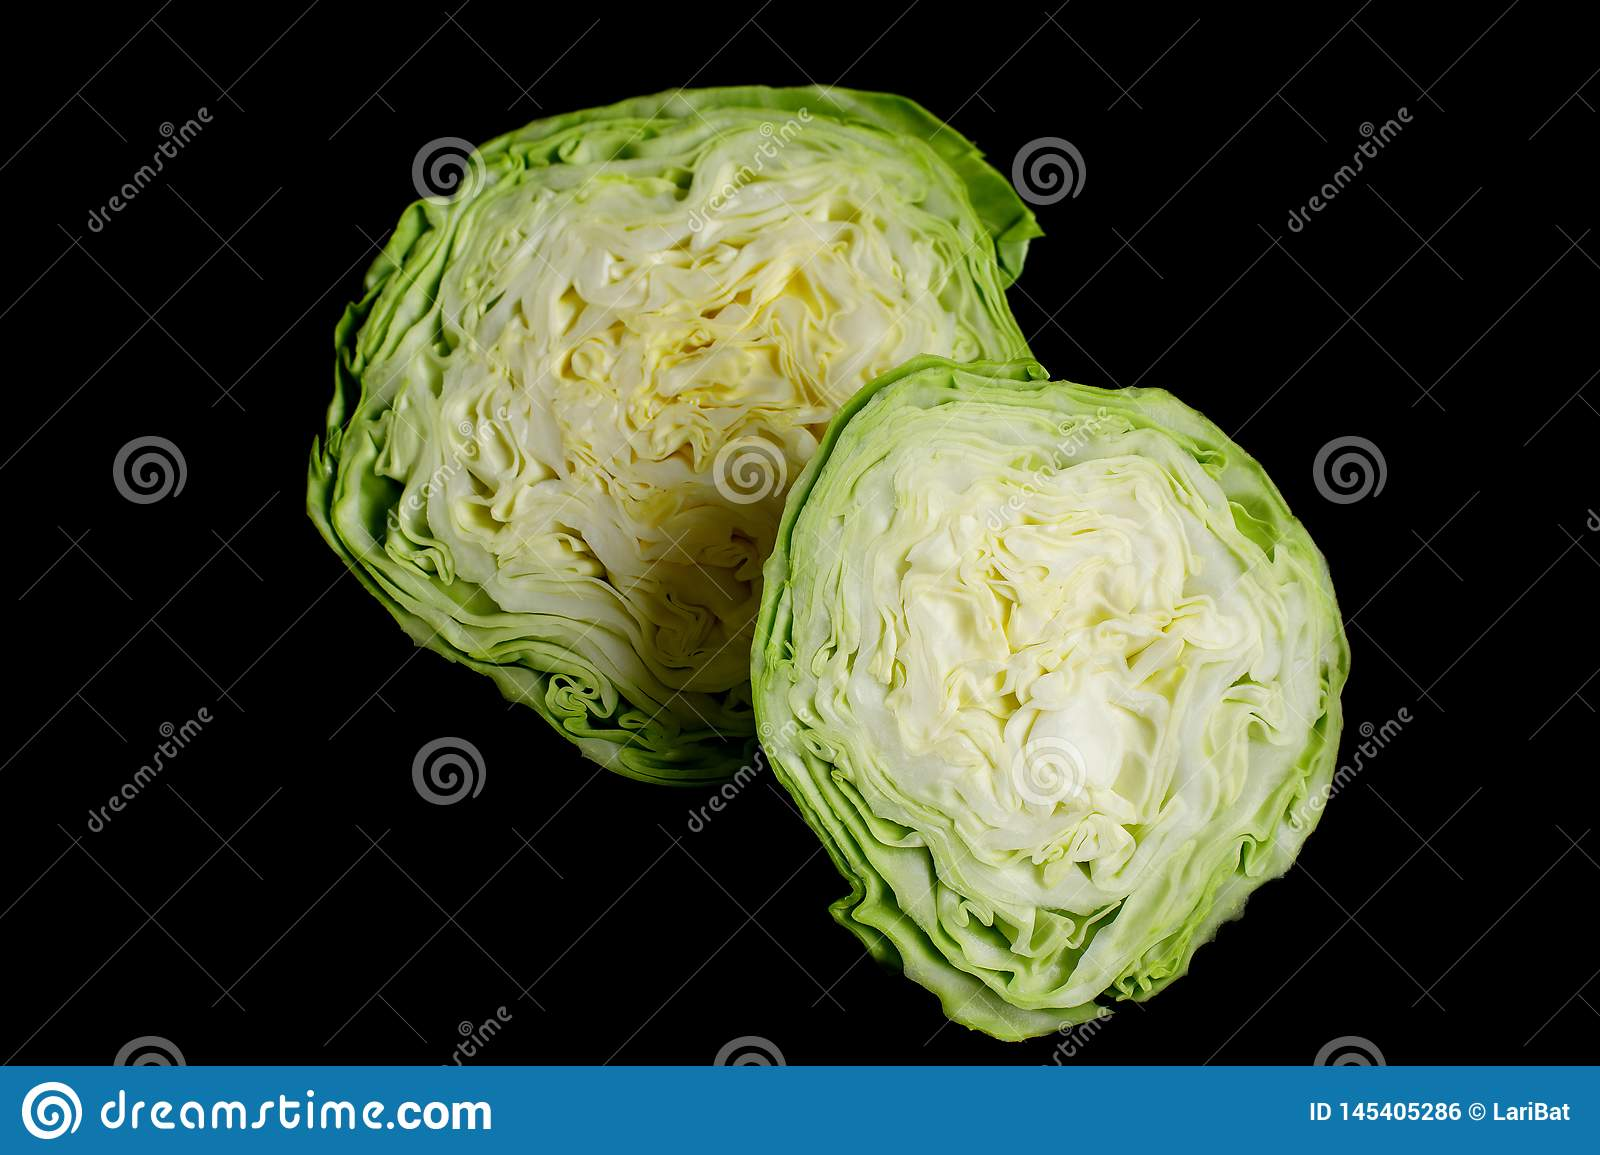 Two halves of white cabbage on a black background